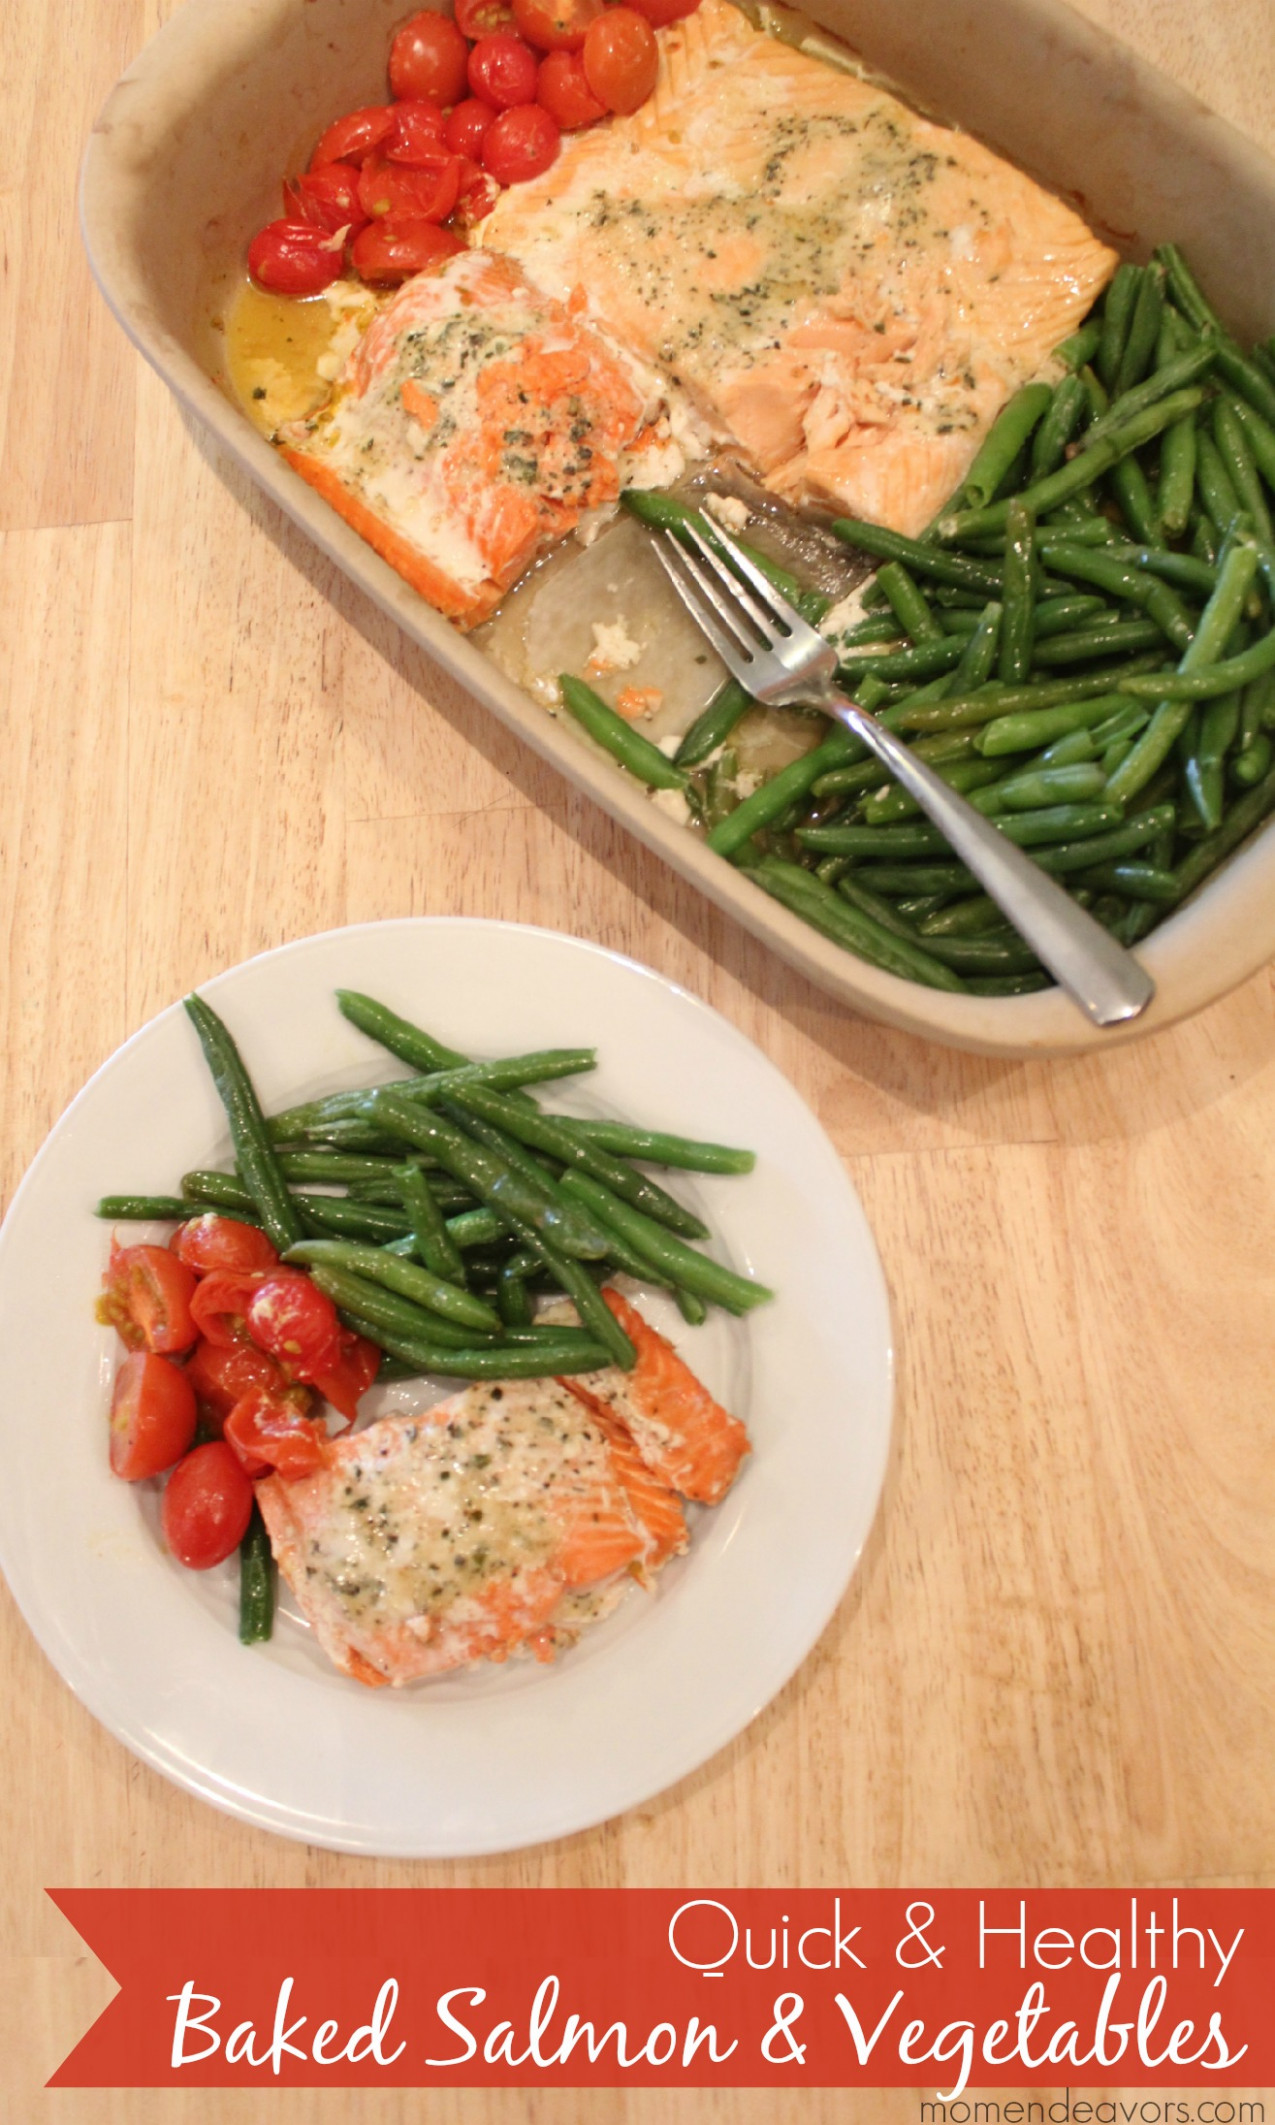 Quick & Healthy Recipe: One Pan Baked Salmon & Vegetables - recipes quick and healthy